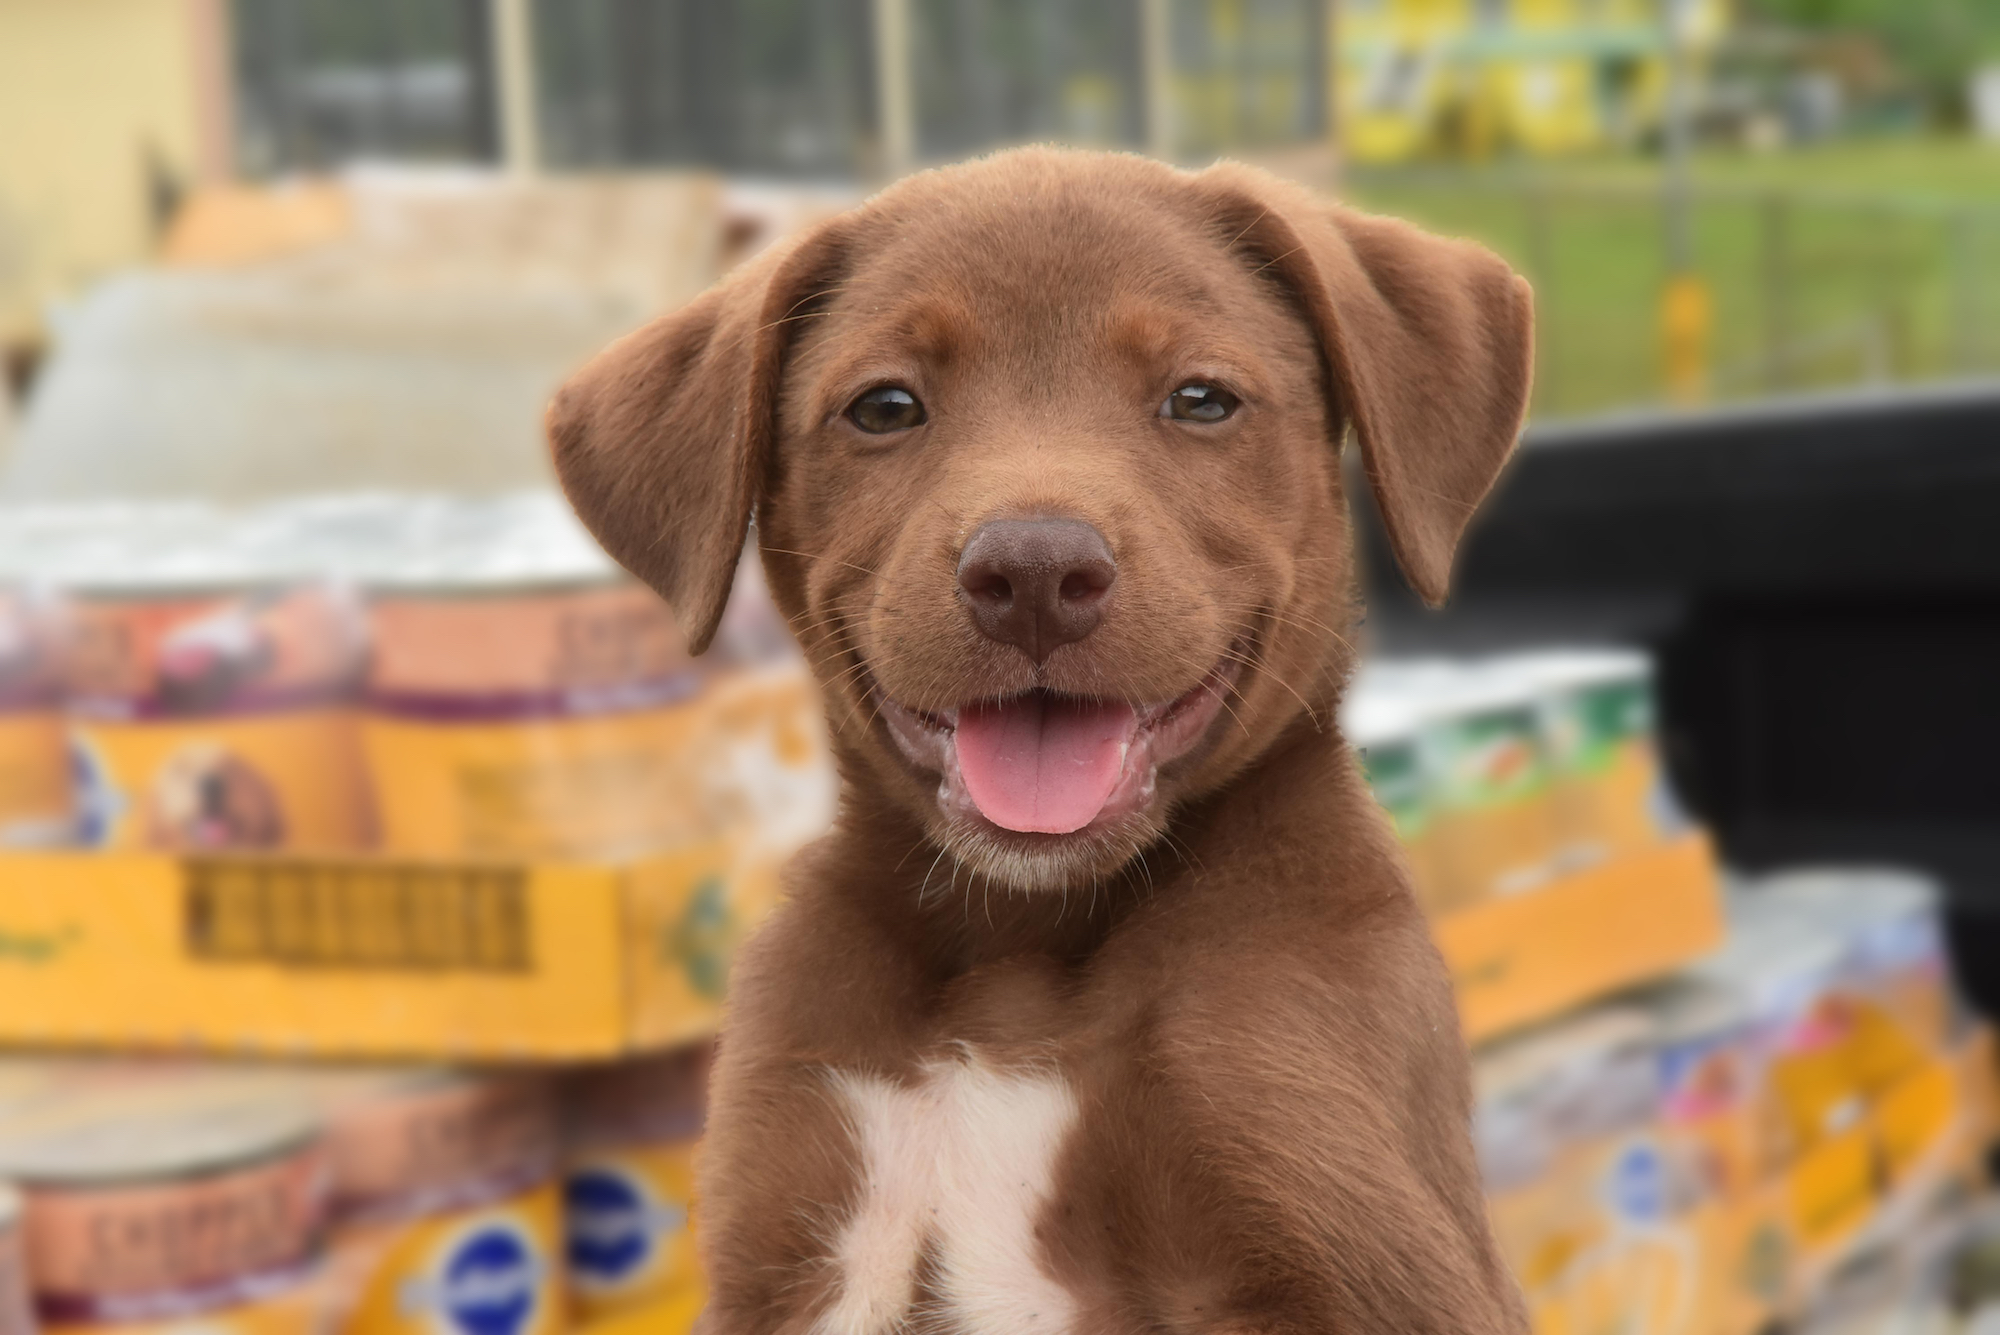 Smiling puppy sitting in front of pallets of food donated to Greater Good Charities' Rescue Bank program.